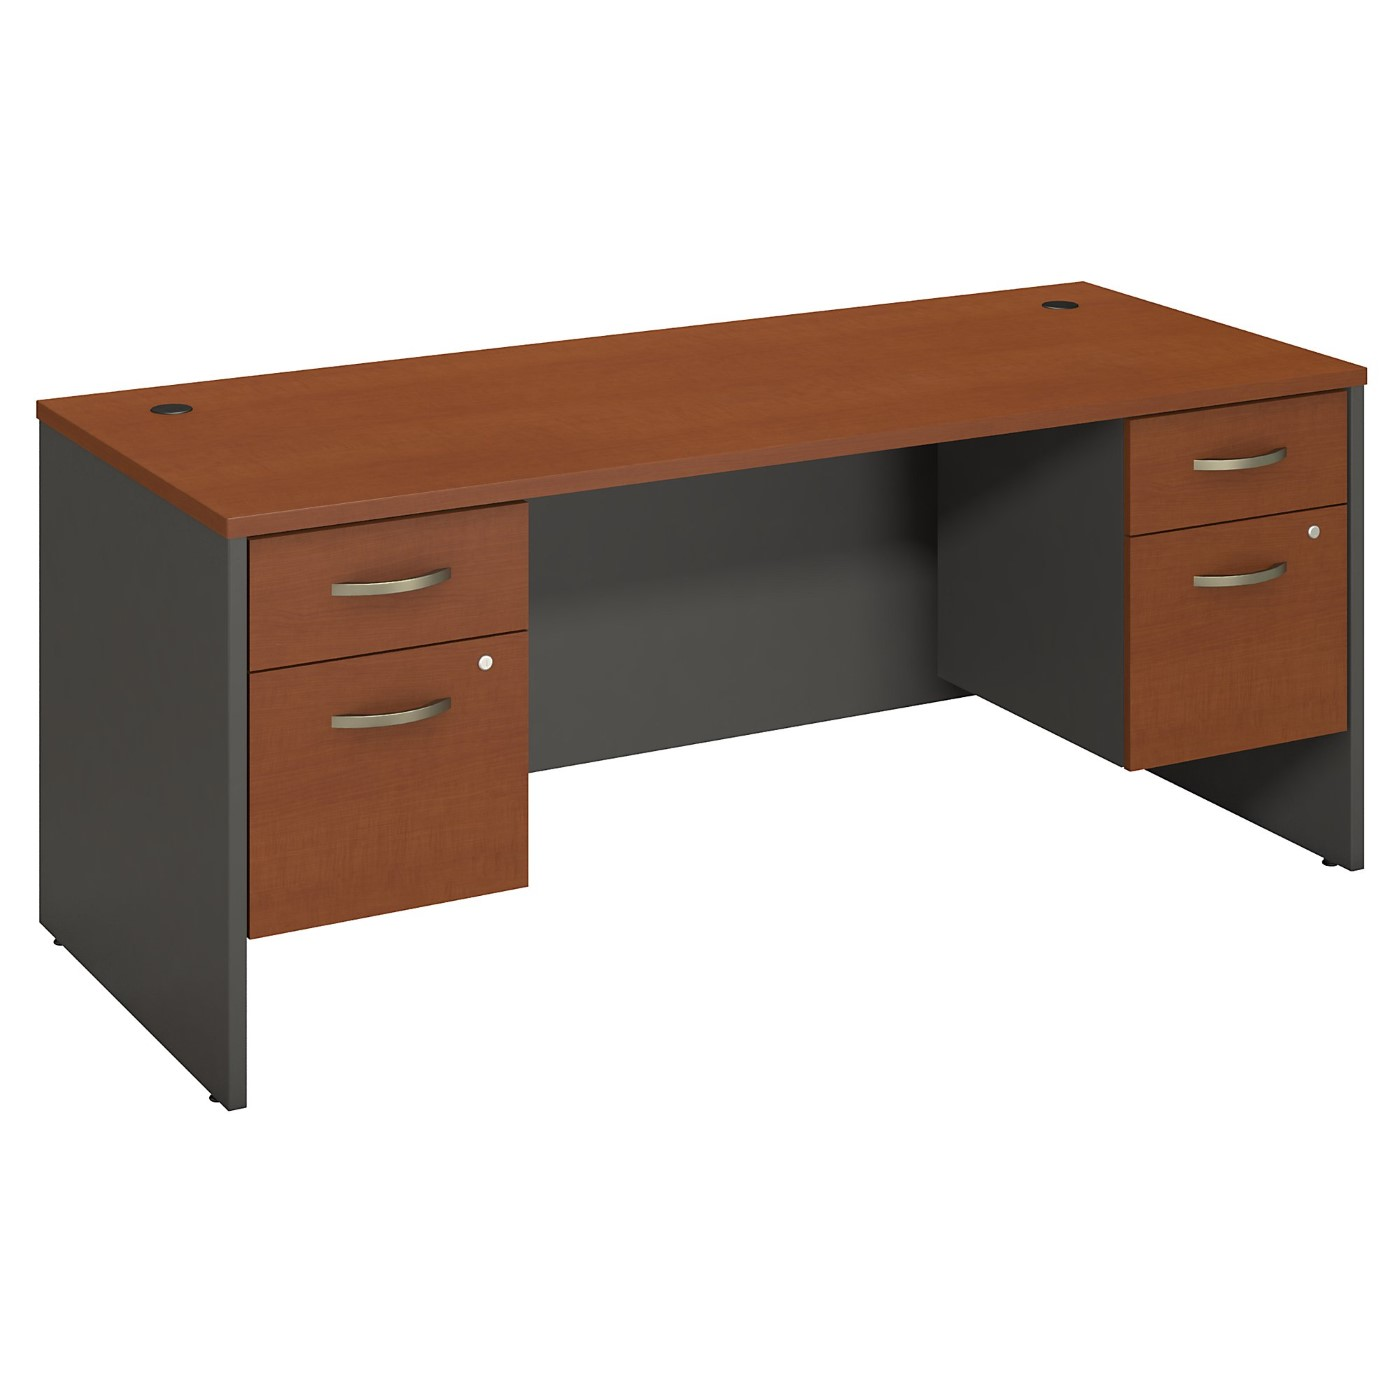 BUSH BUSINESS FURNITURE SERIES C 72W X 30D DESK WITH 2 PEDESTALS. FREE SHIPPING